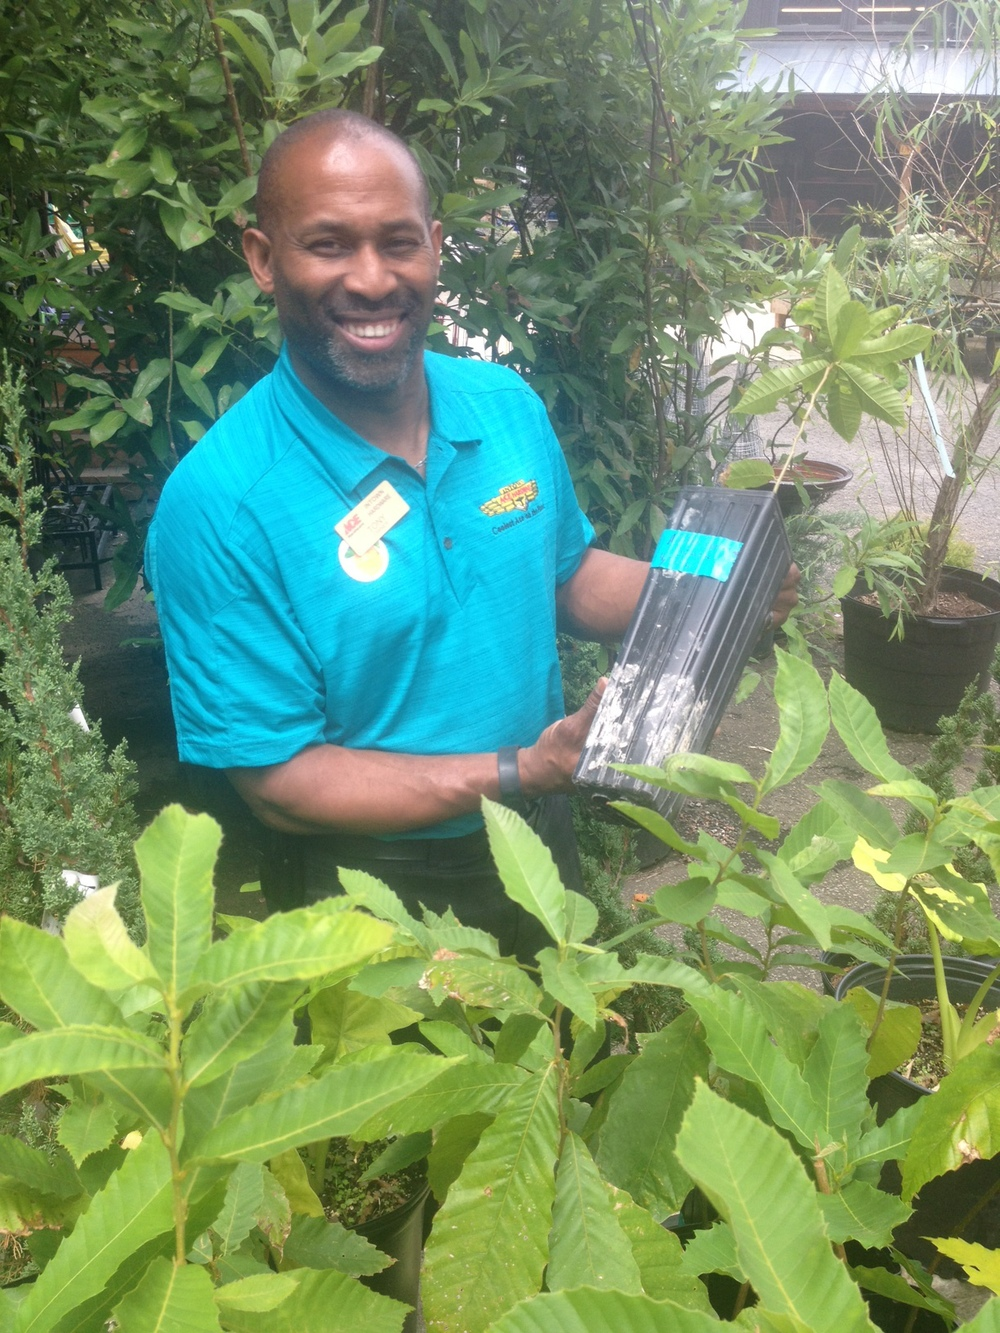 SFC Board Member Tony Powers, also co-owner of Ace Hardware in Decatur, welcoming Chestnut saplings (summer 2013)